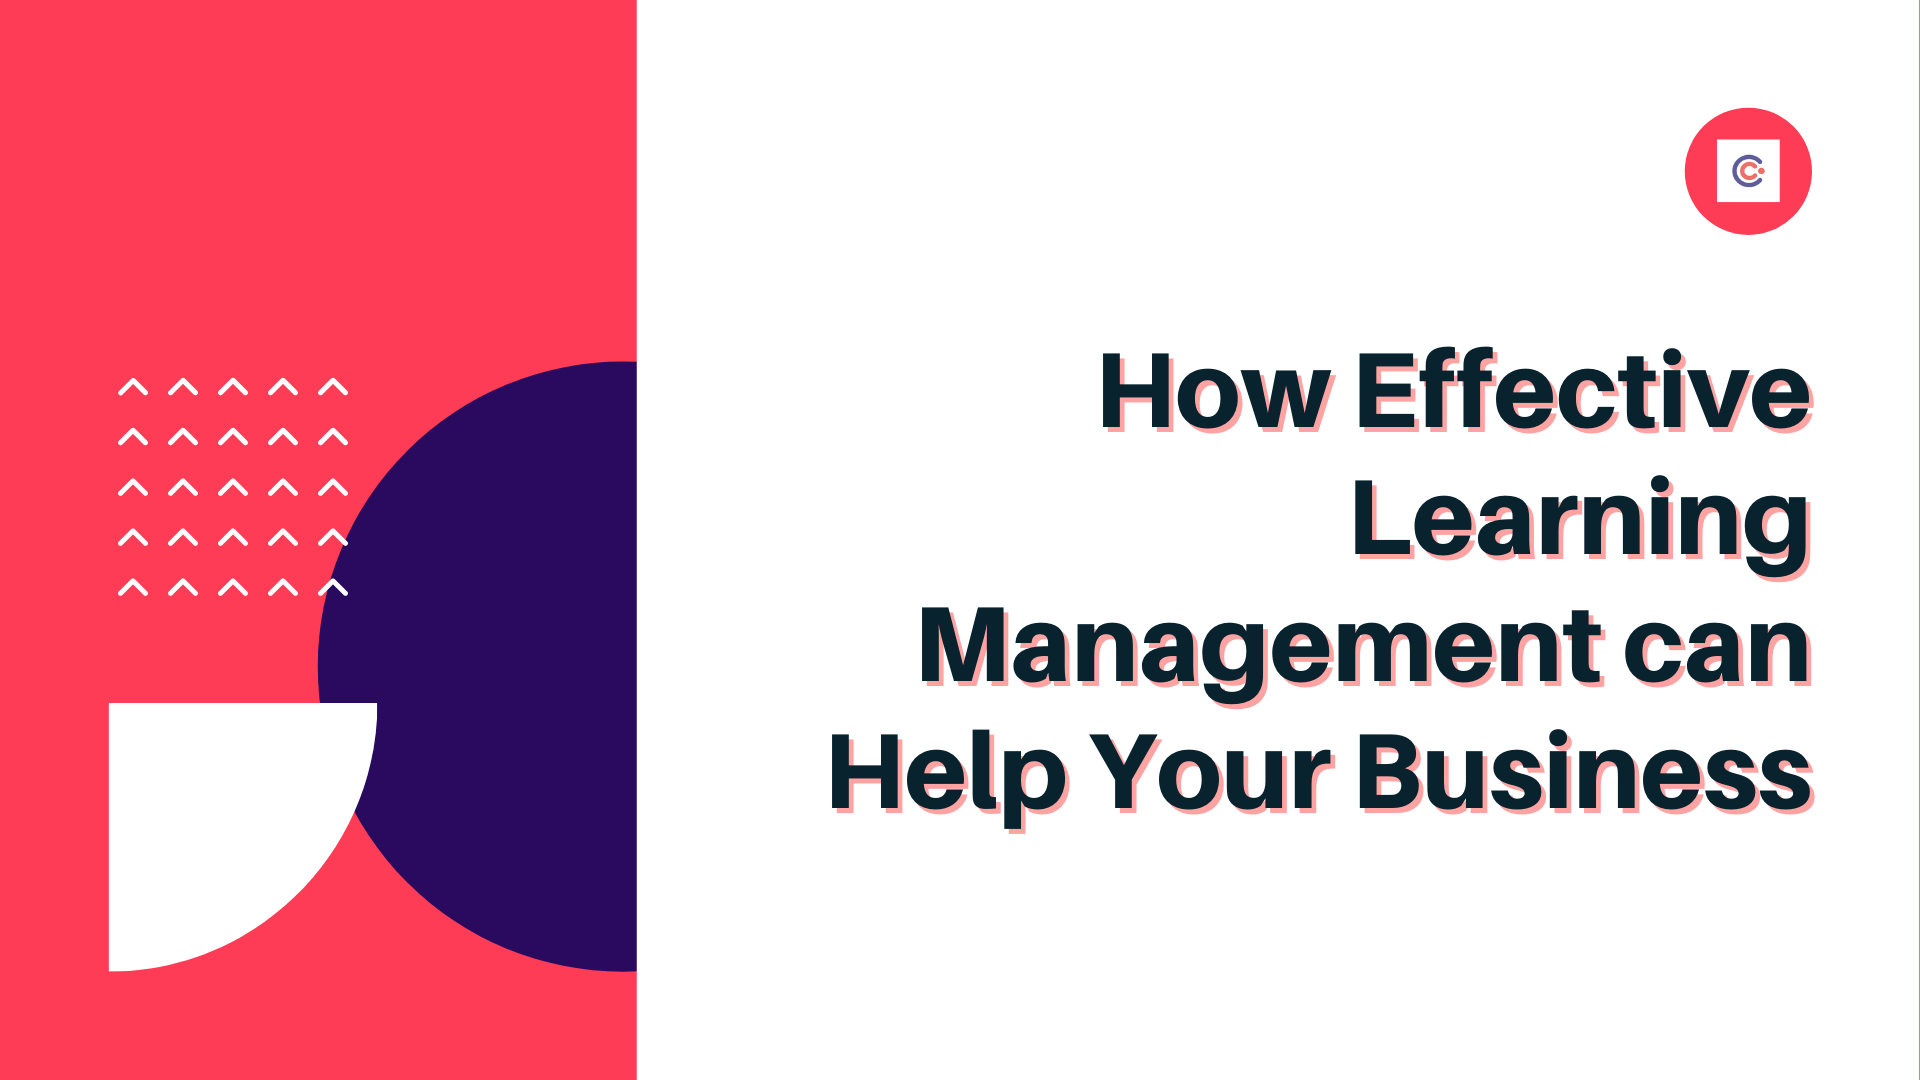 How Effective Learning Management can Help Your Business